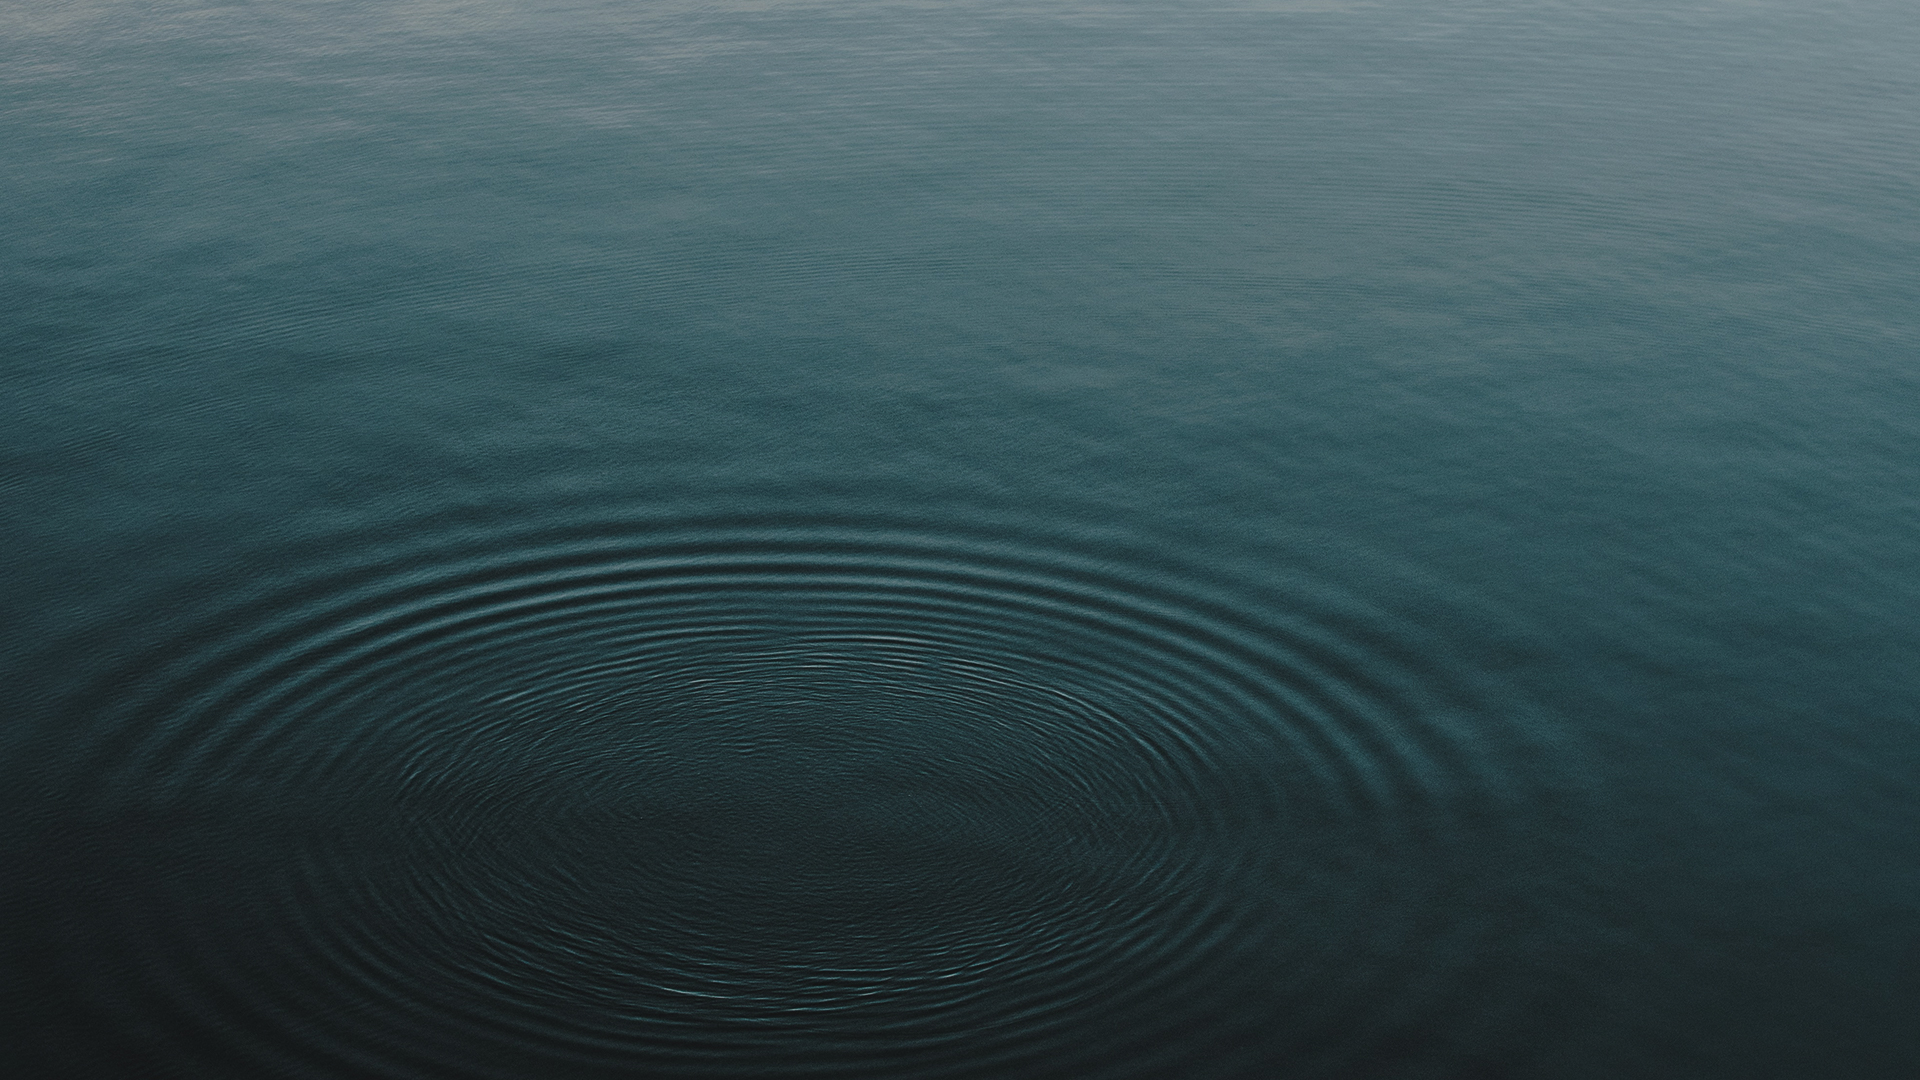 The surface of a dark blue lake with ripples in it.